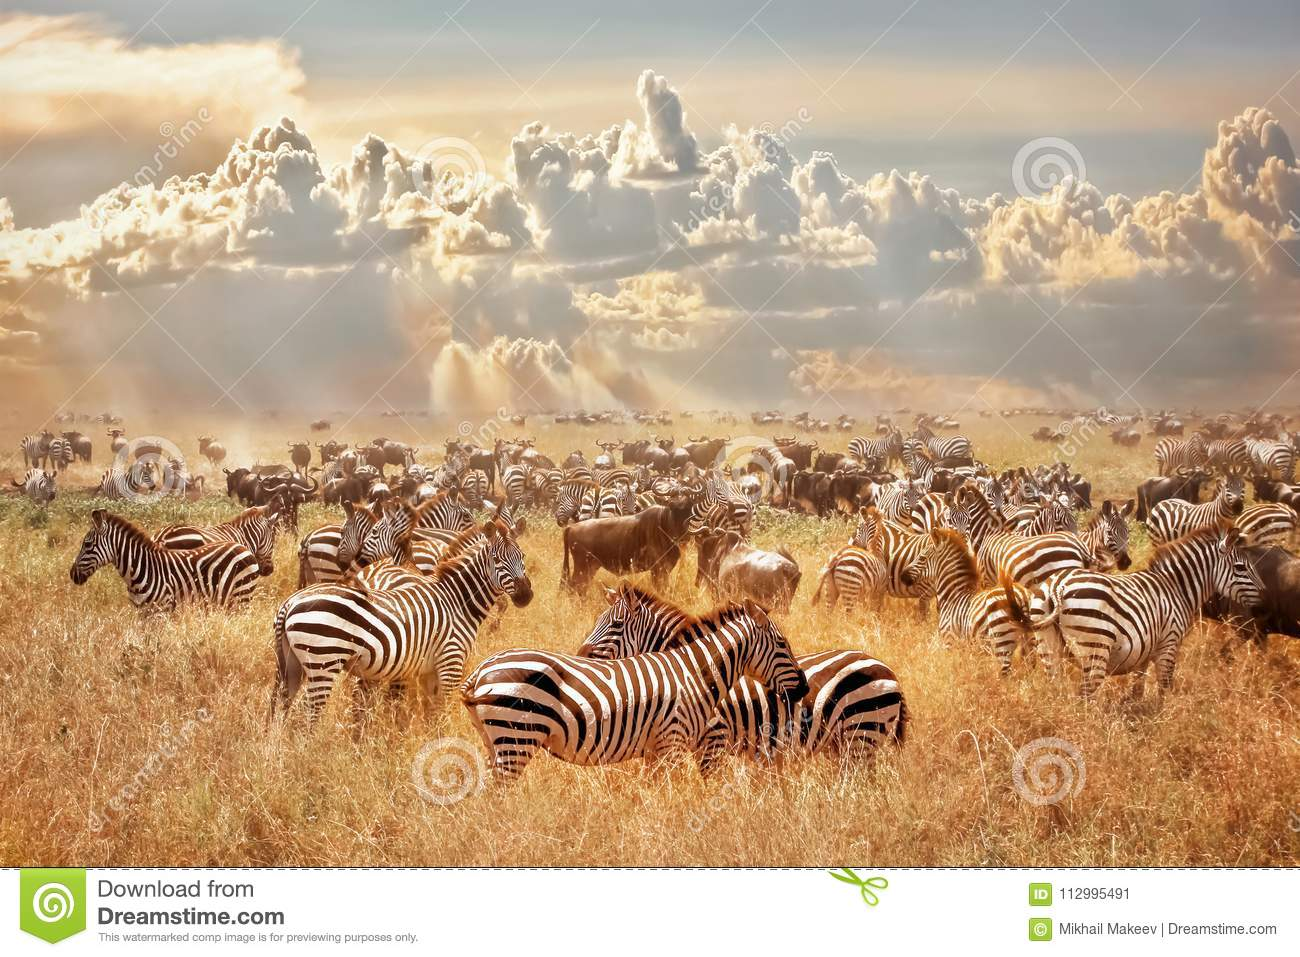 Download African Wild Zebras And Wildebeest In The African Savanna Against A Background Of Cumulus Thunderclouds And The Setting Sun. Wild Stock Image - Image of adventure, savannah: 112995491